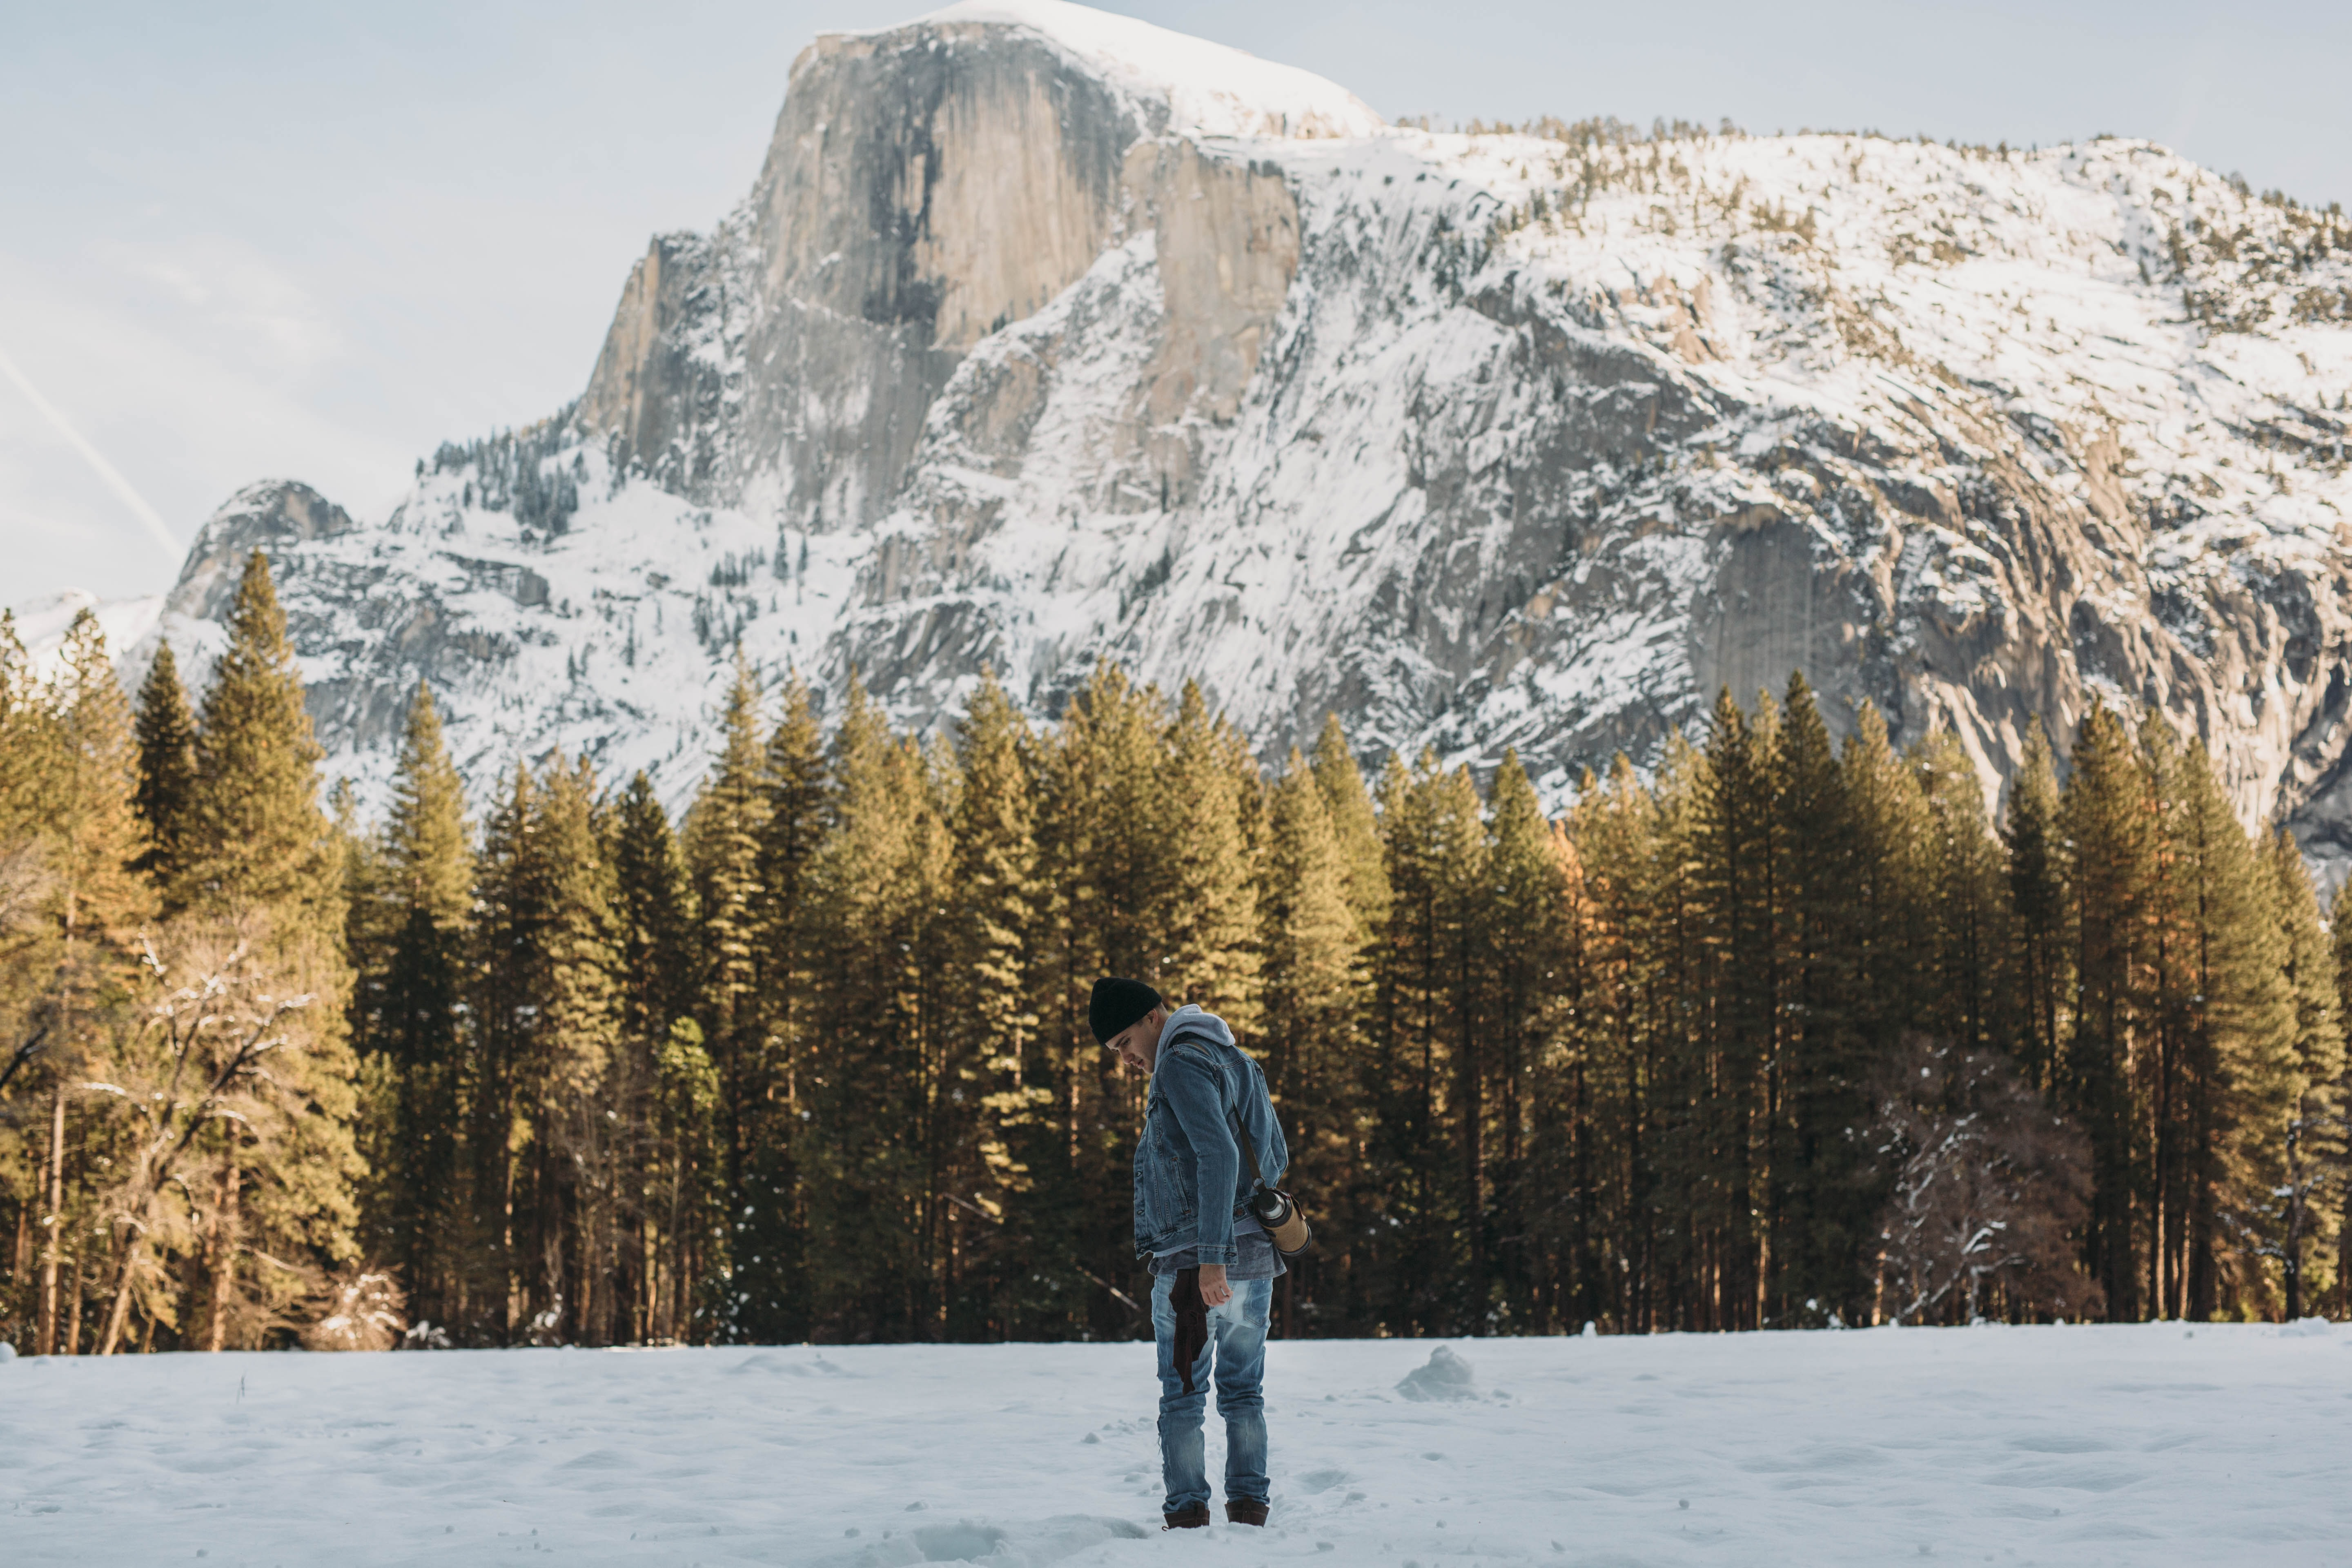 man standing on snow field near trees and mountain during day